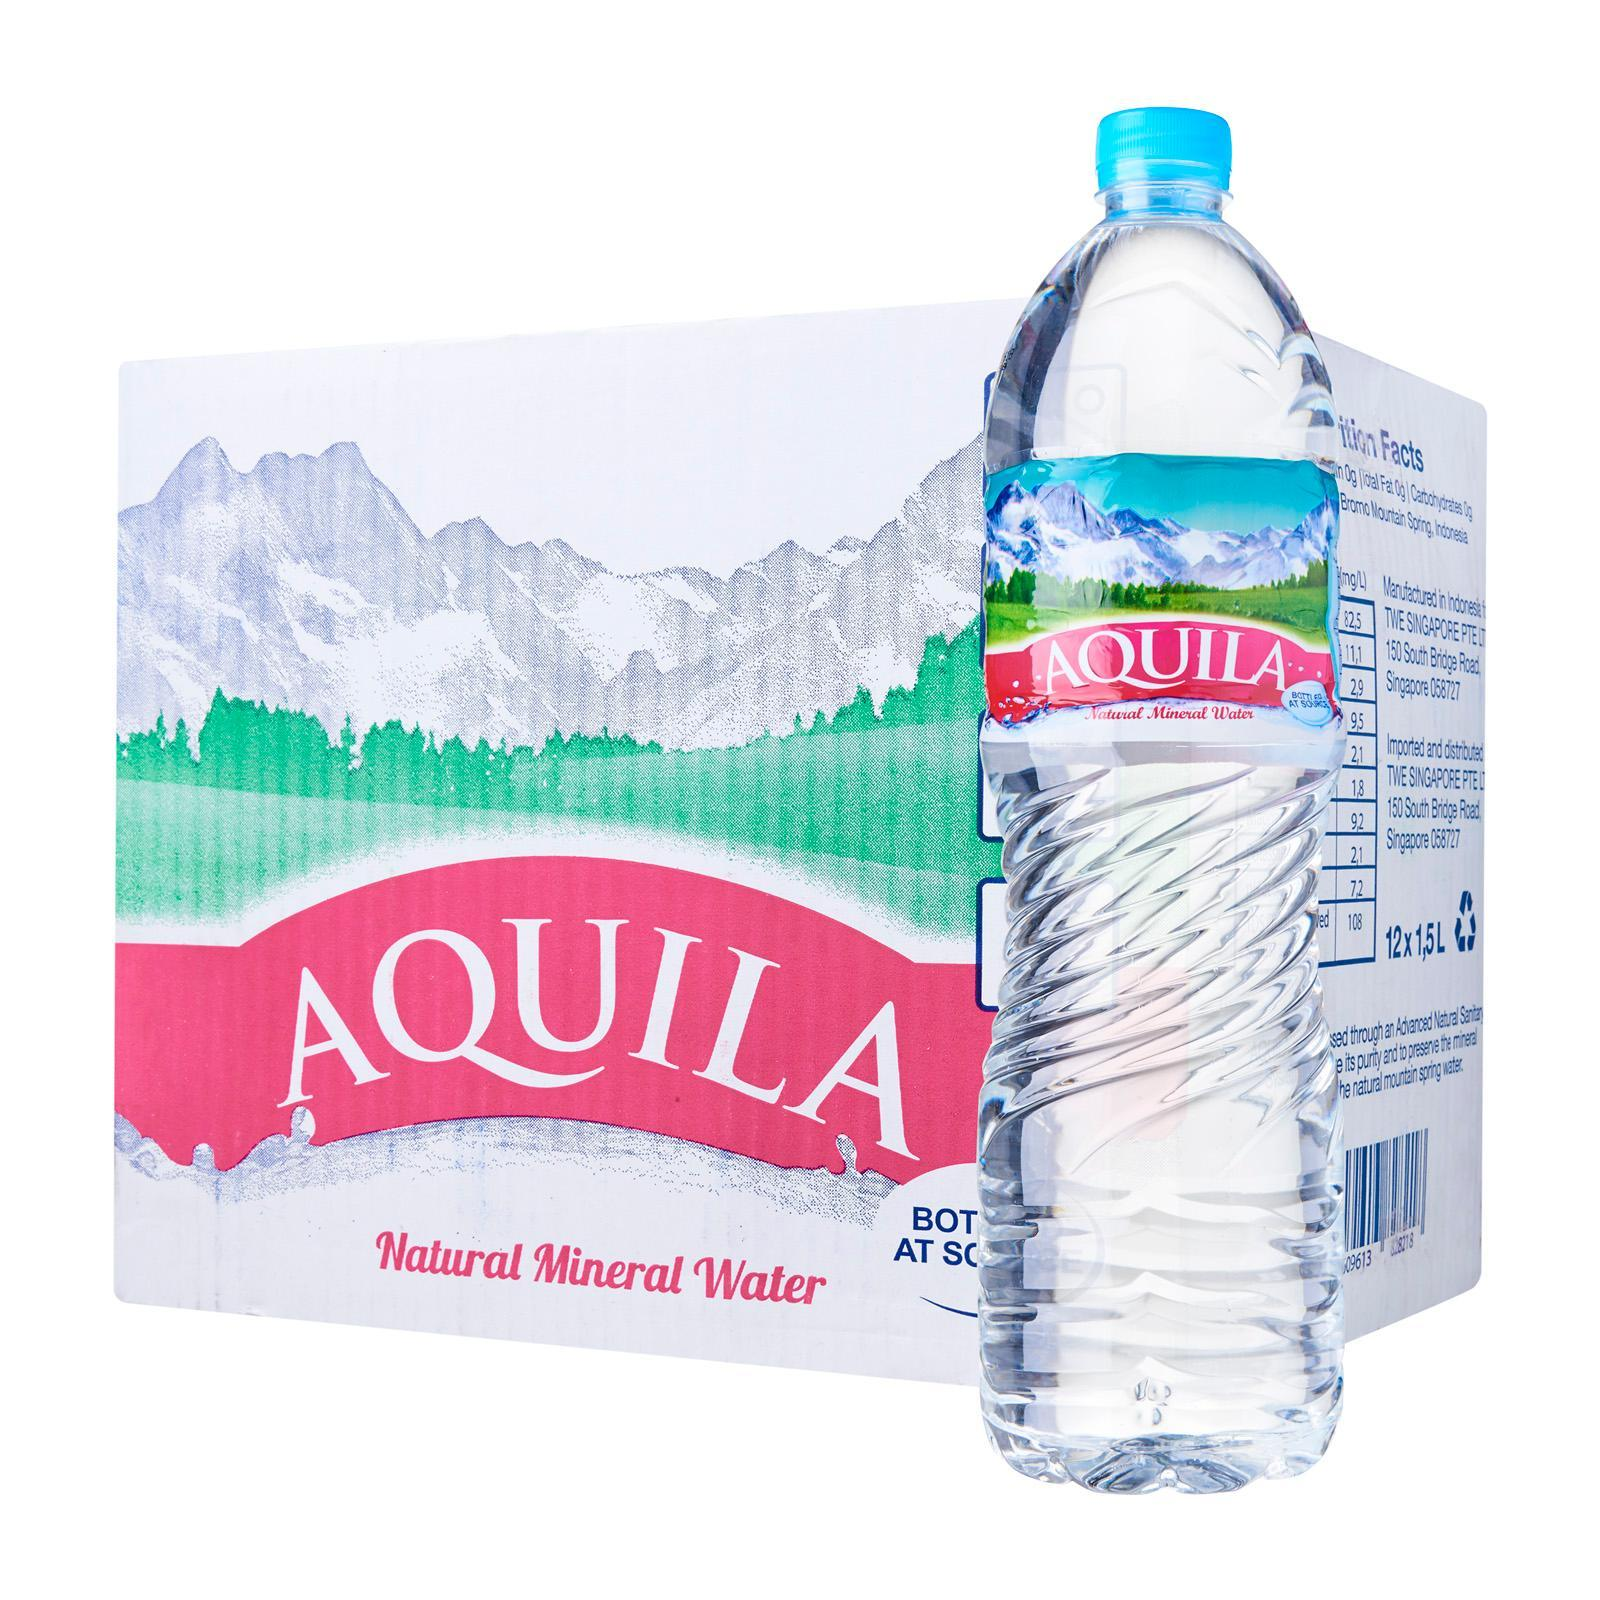 Aquila Natural Mineral Water - Carton